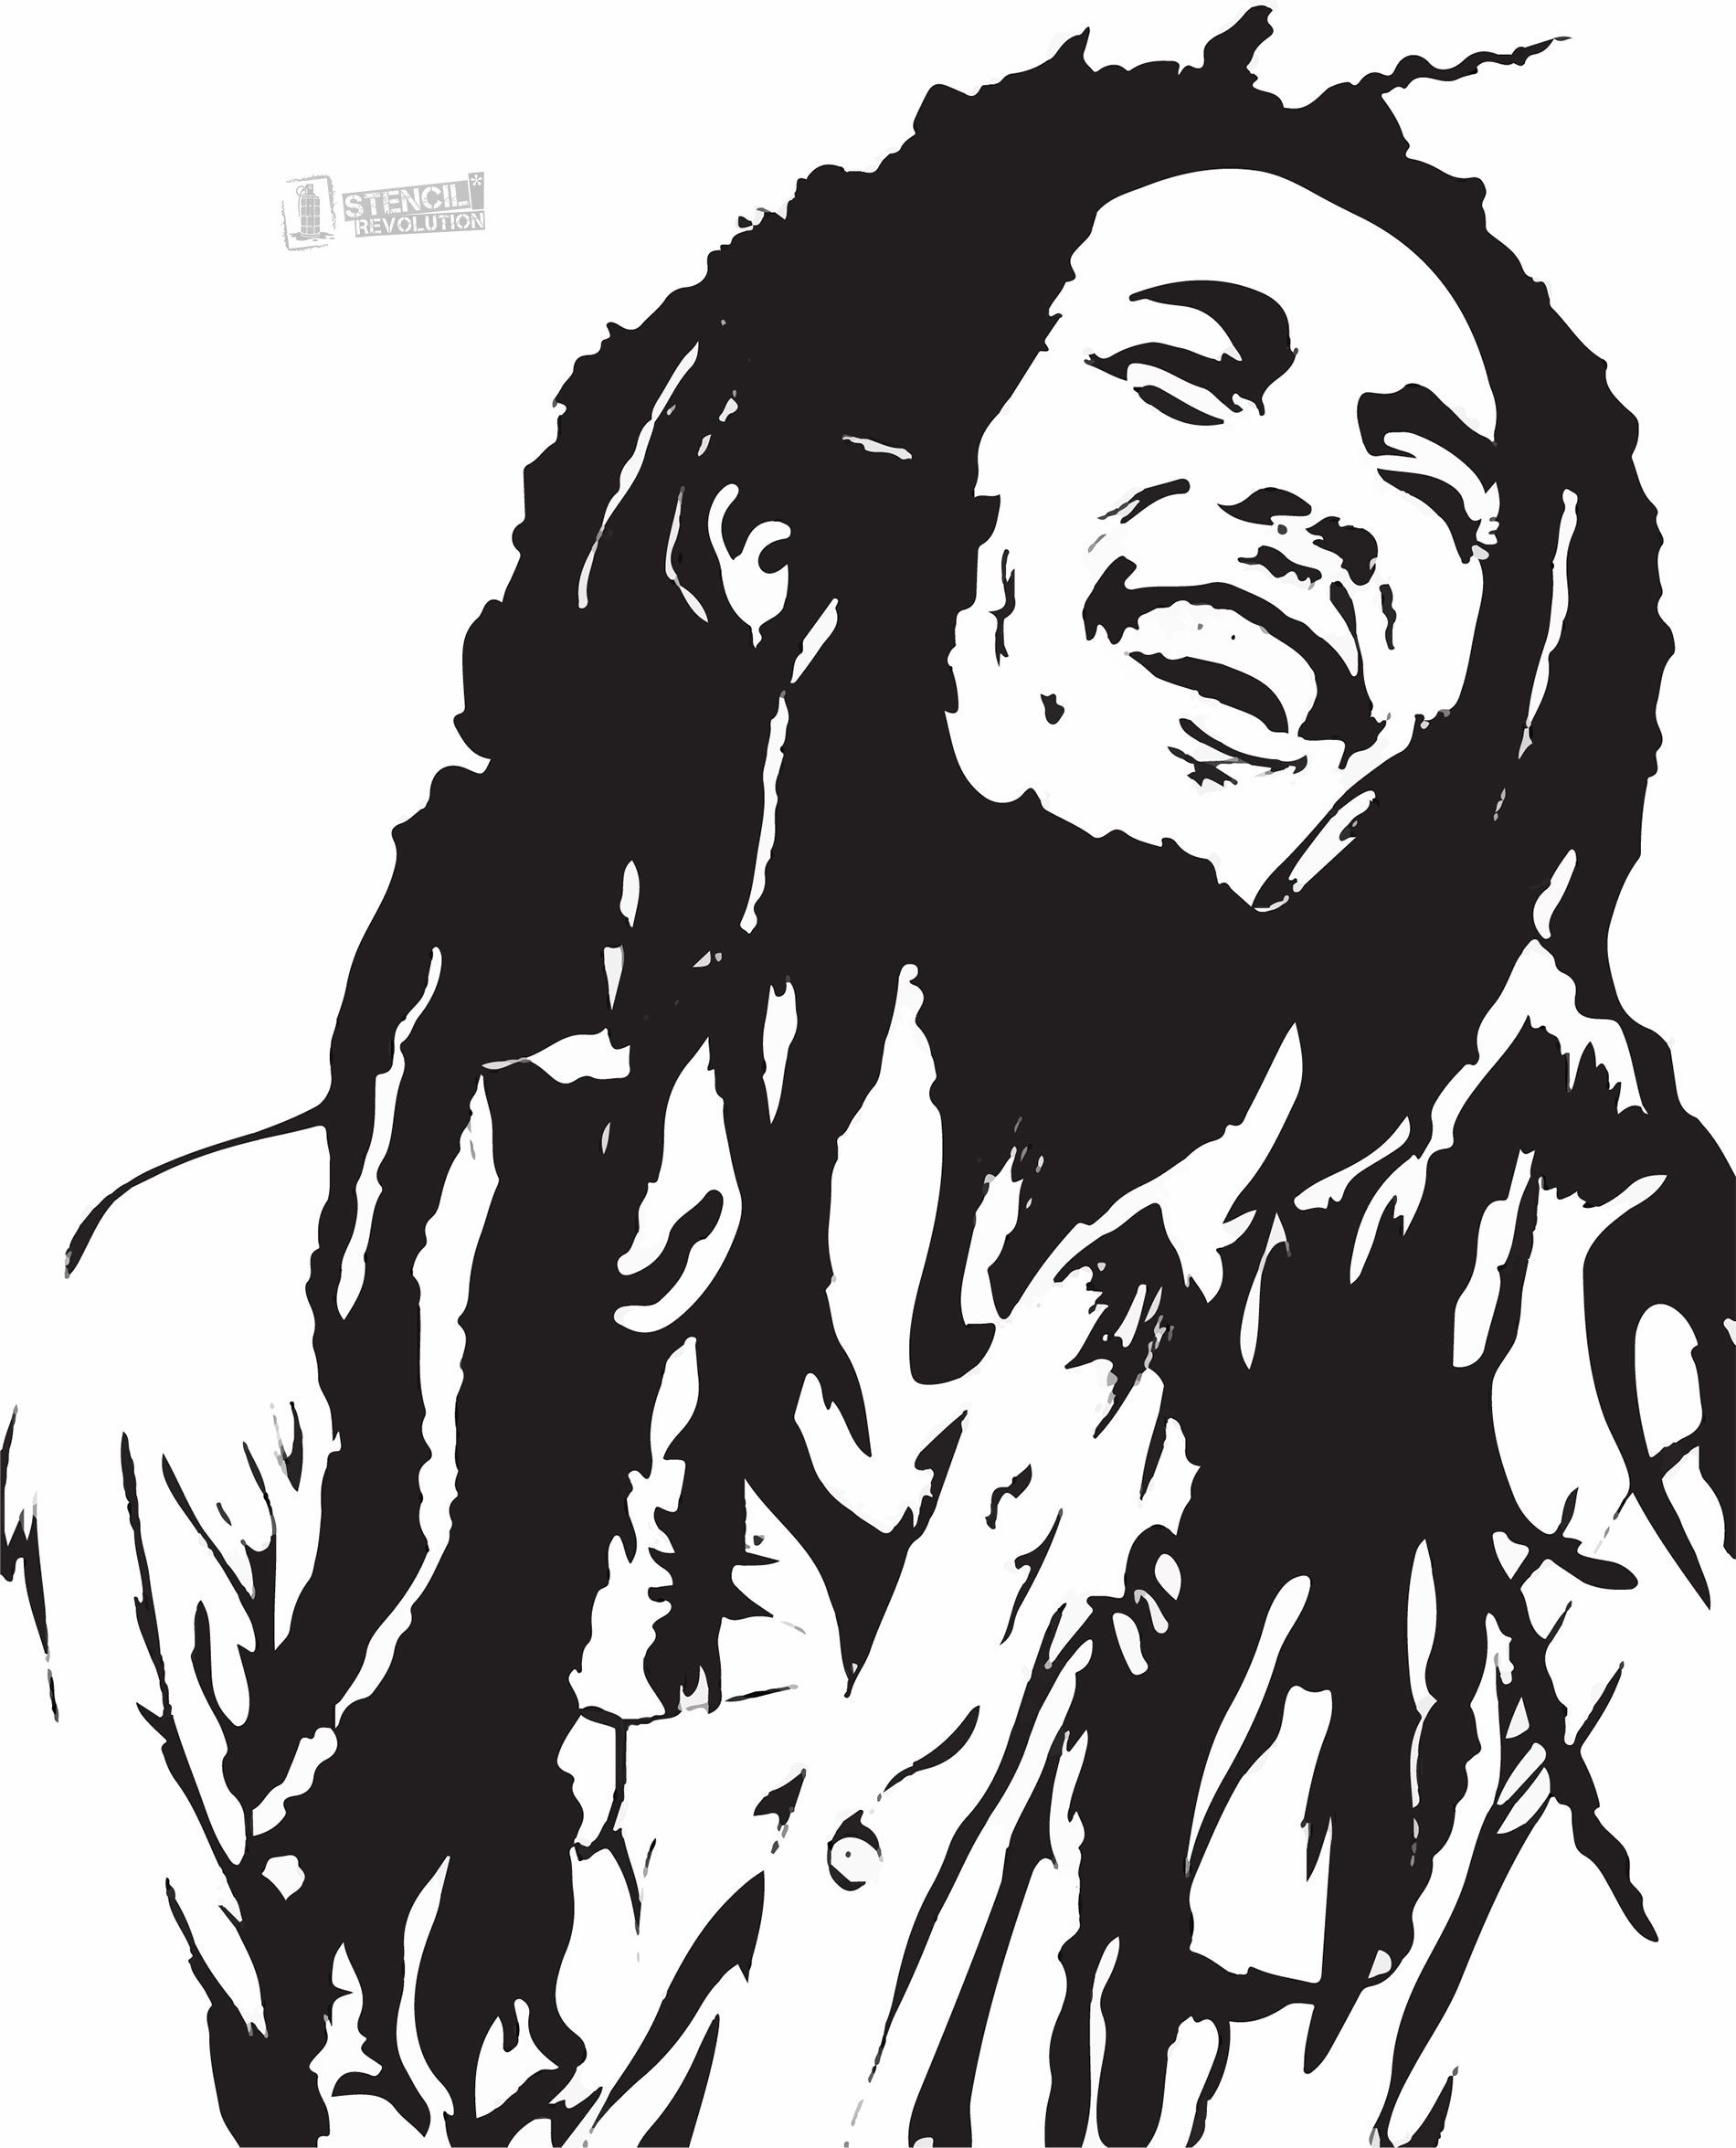 bob marley drawing at getdrawings com free for personal use bob rh getdrawings com Bob Marley Easy Stencil bob marley silhouette clip art